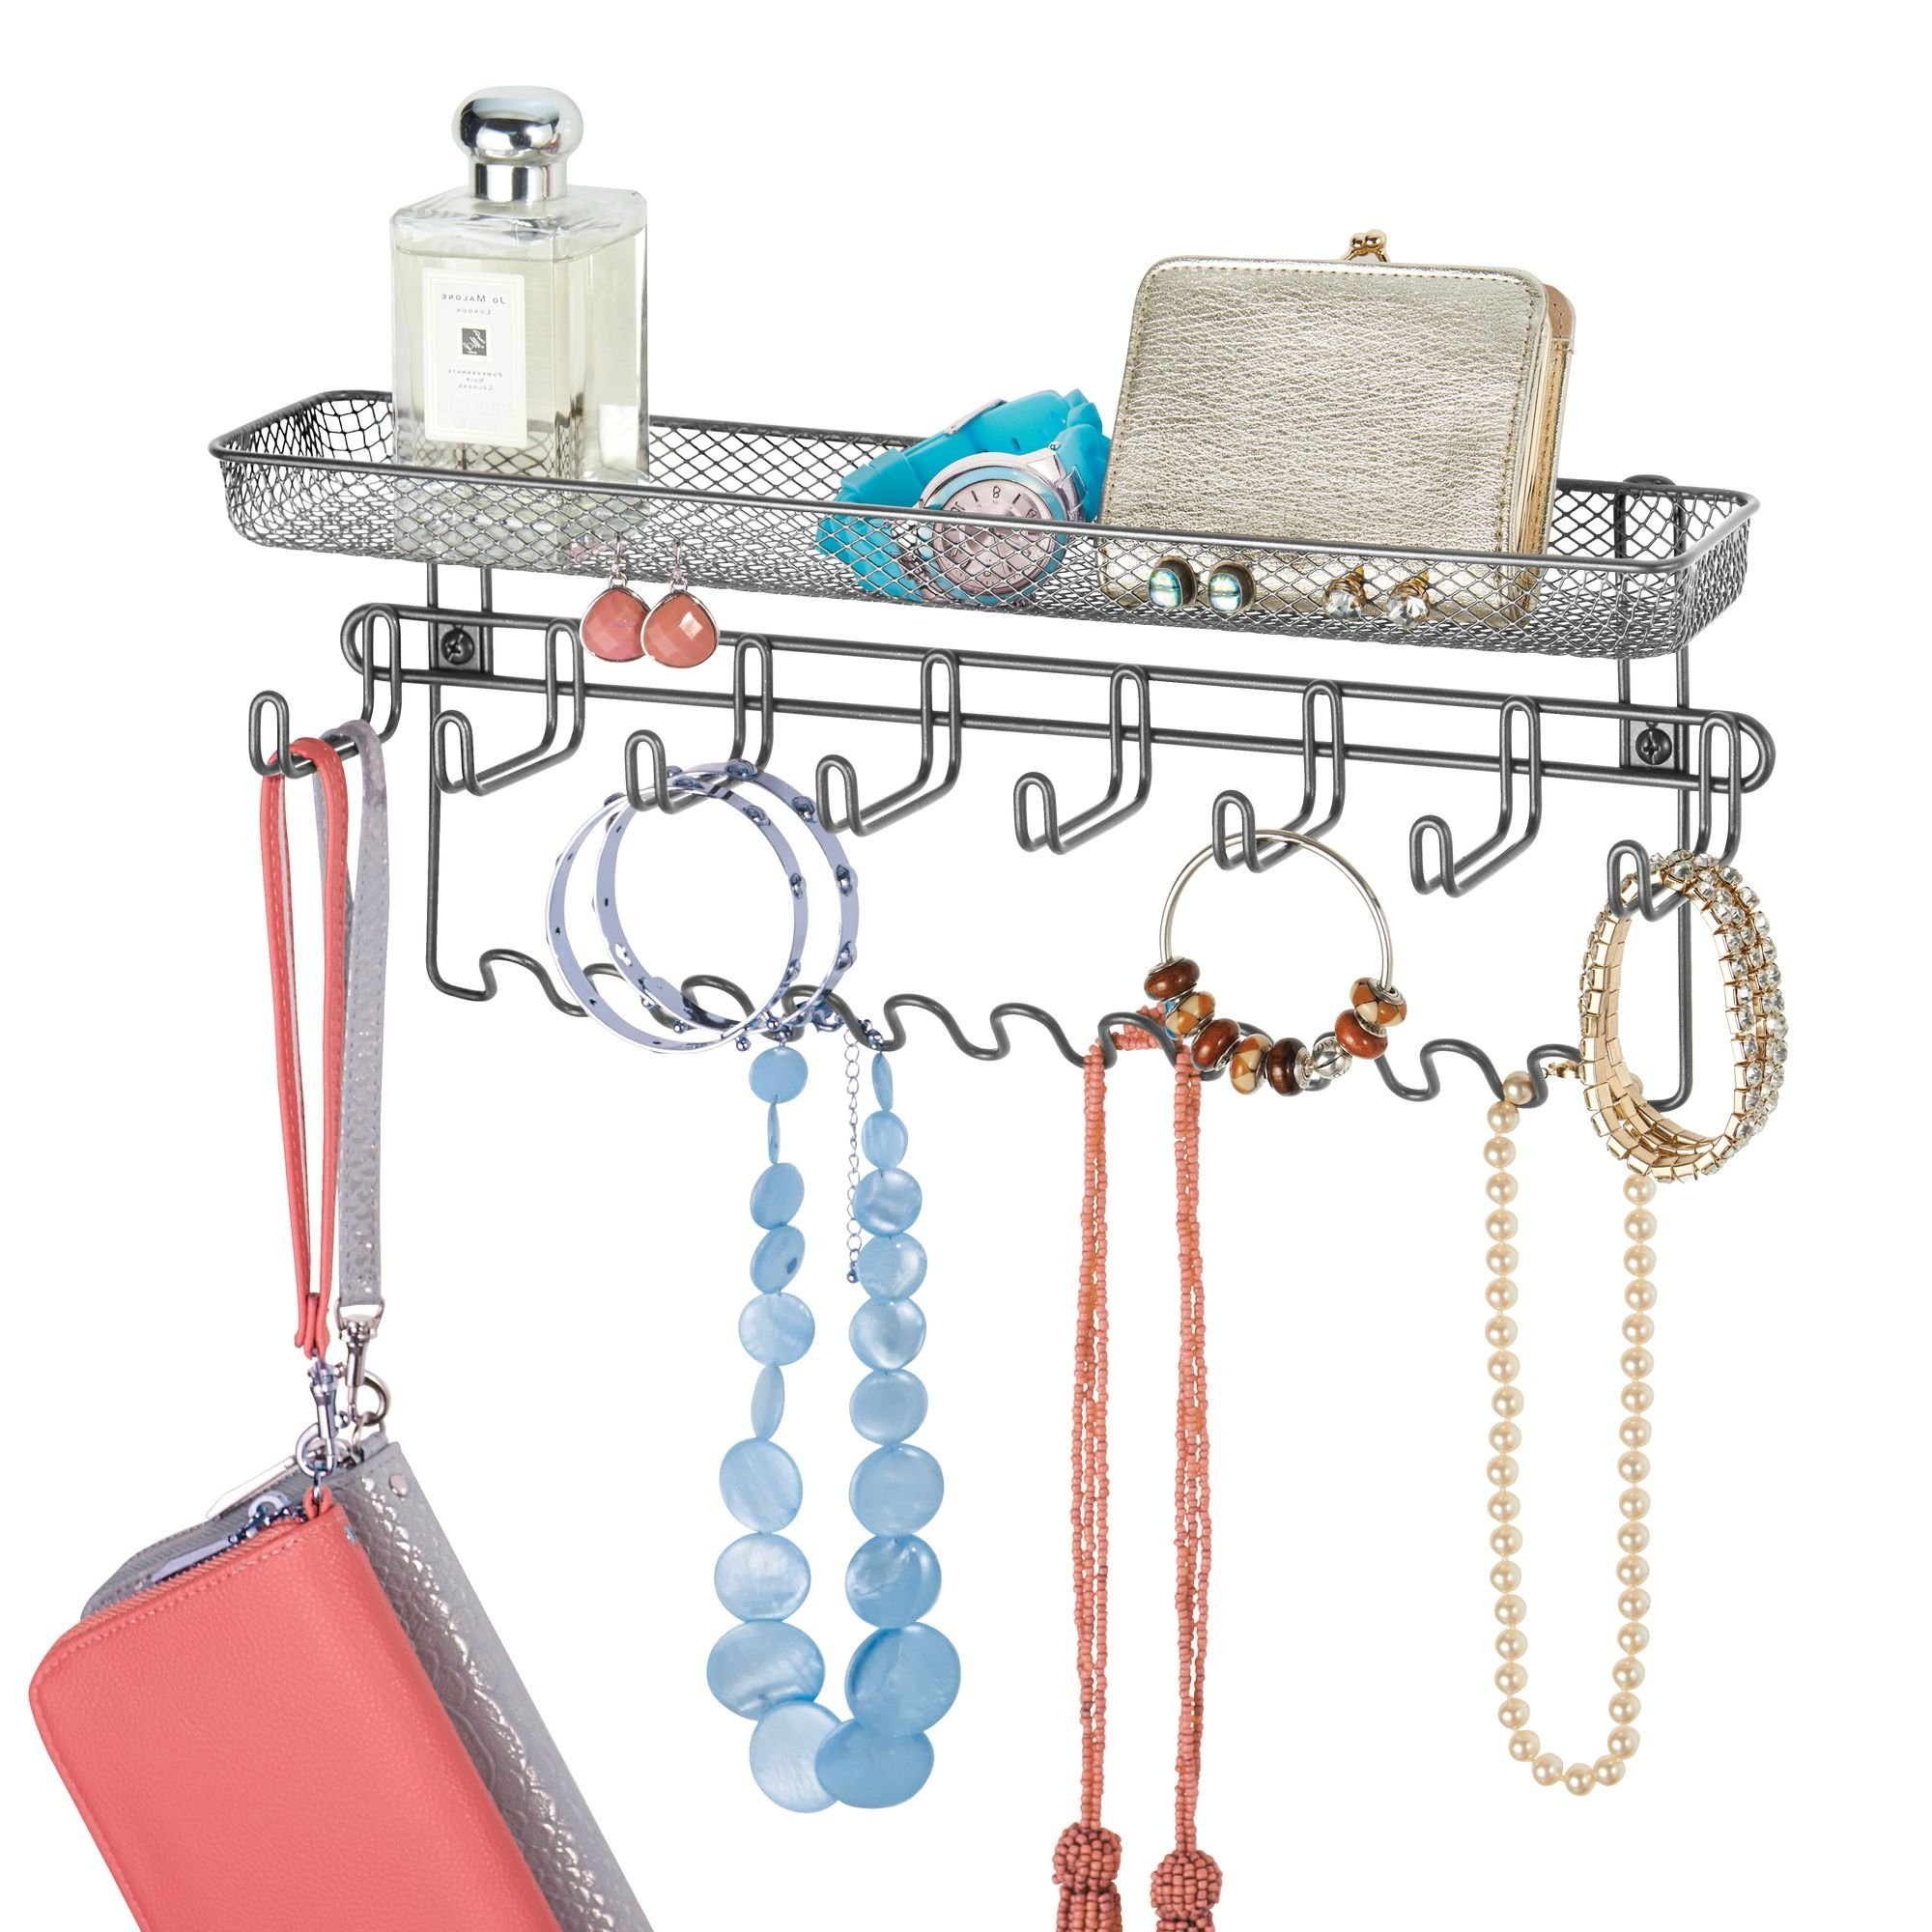 mDesign Decorative Metal Closet Wall Mount Jewelry Accessory Organizer for Storage of Necklaces, Bracelets, Rings, Earrings, Sunglasses, Wallets - 8 Large Hooks/11 Small Hooks/1 Basket, Graphite